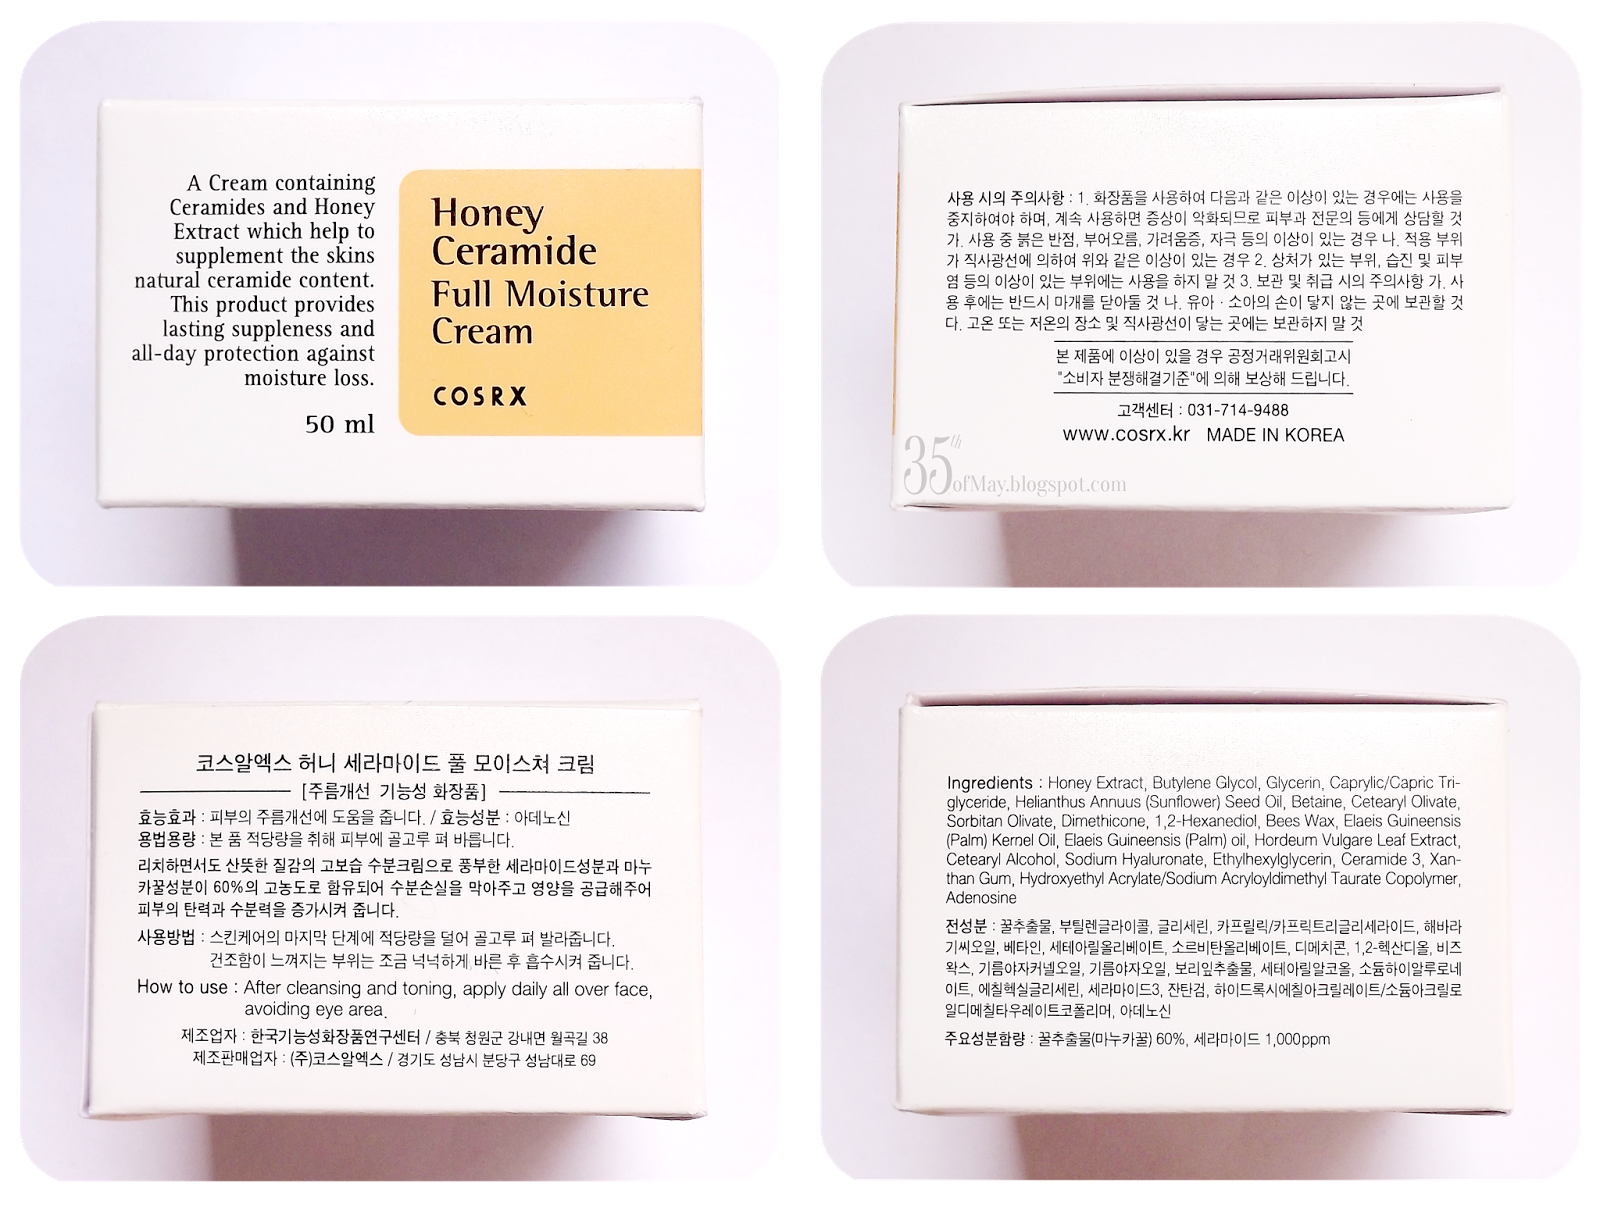 Cosrx Honey Ceramide Full Moisture Cream review